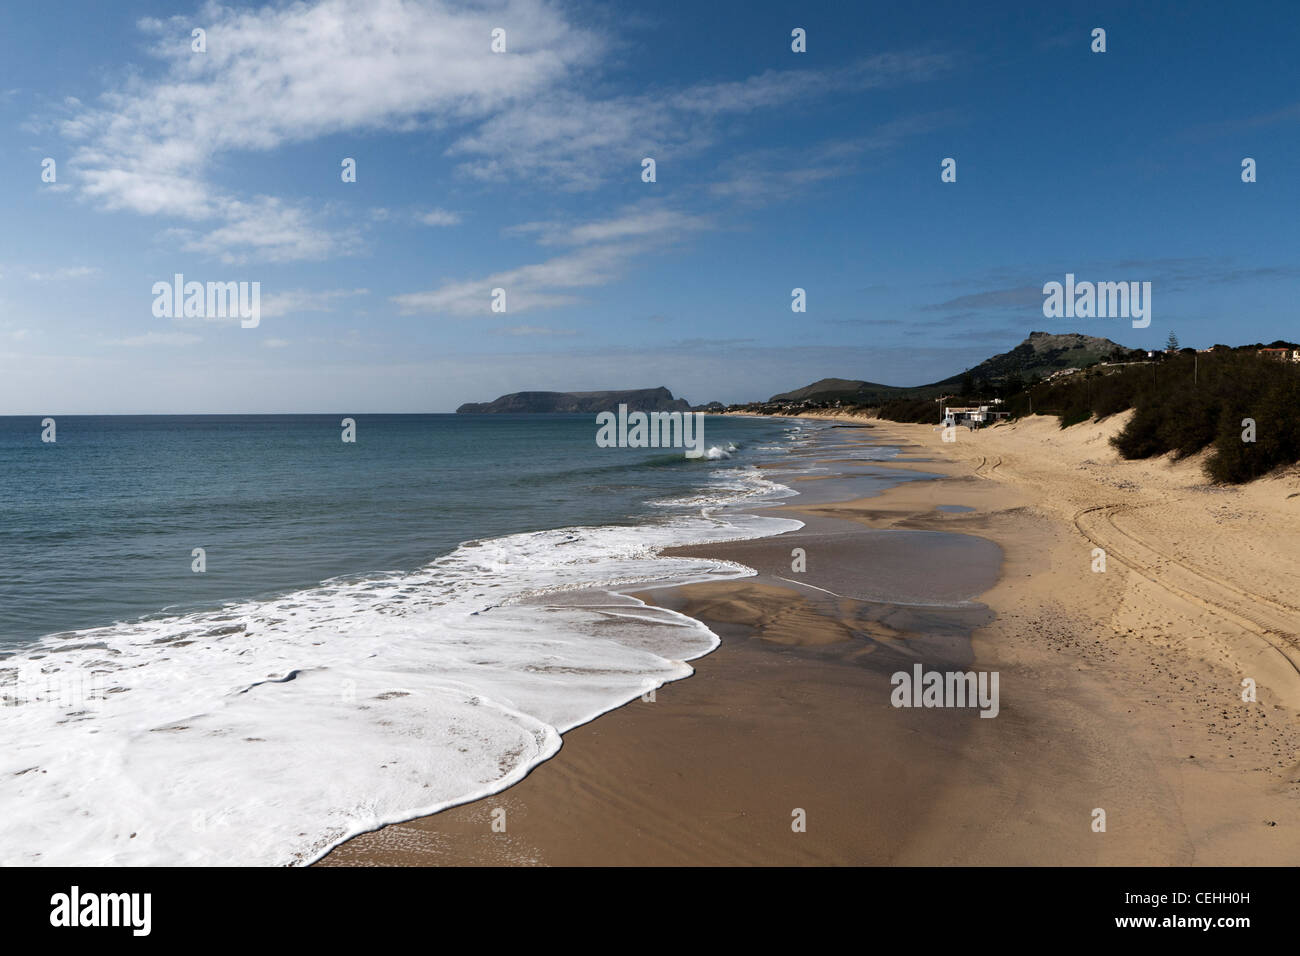 Porto Santo beach, Portugal - Stock Image